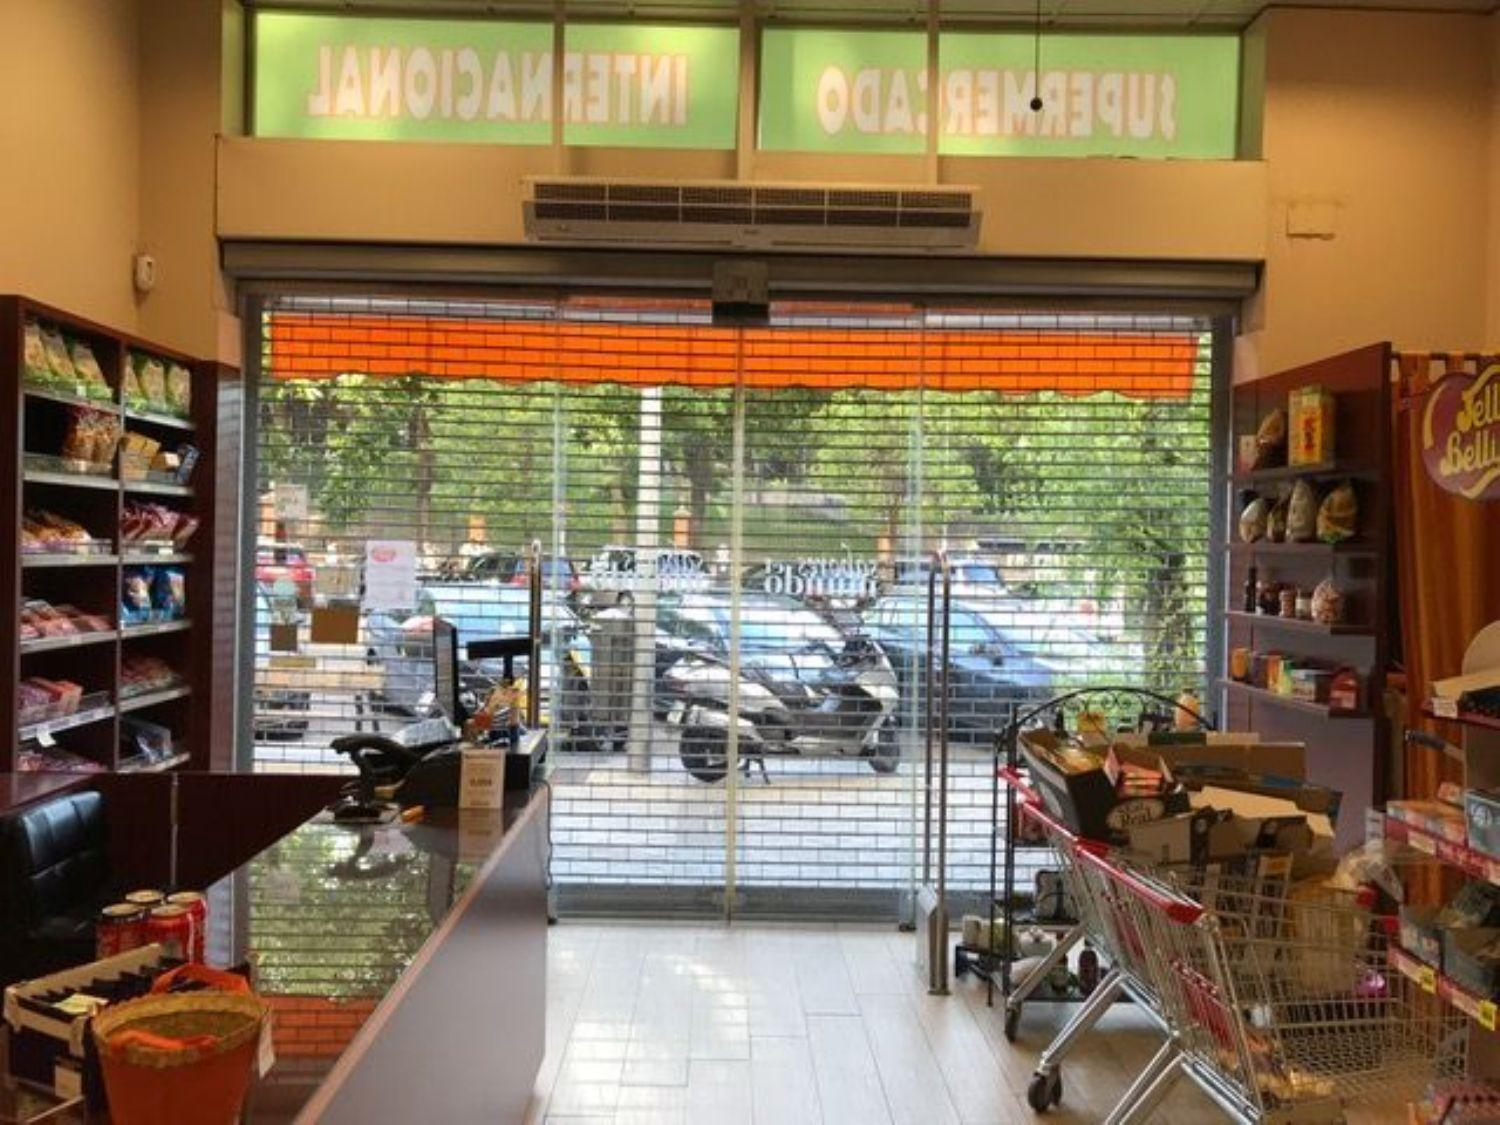 Local Comercial en Venta Guindalera, Madrid